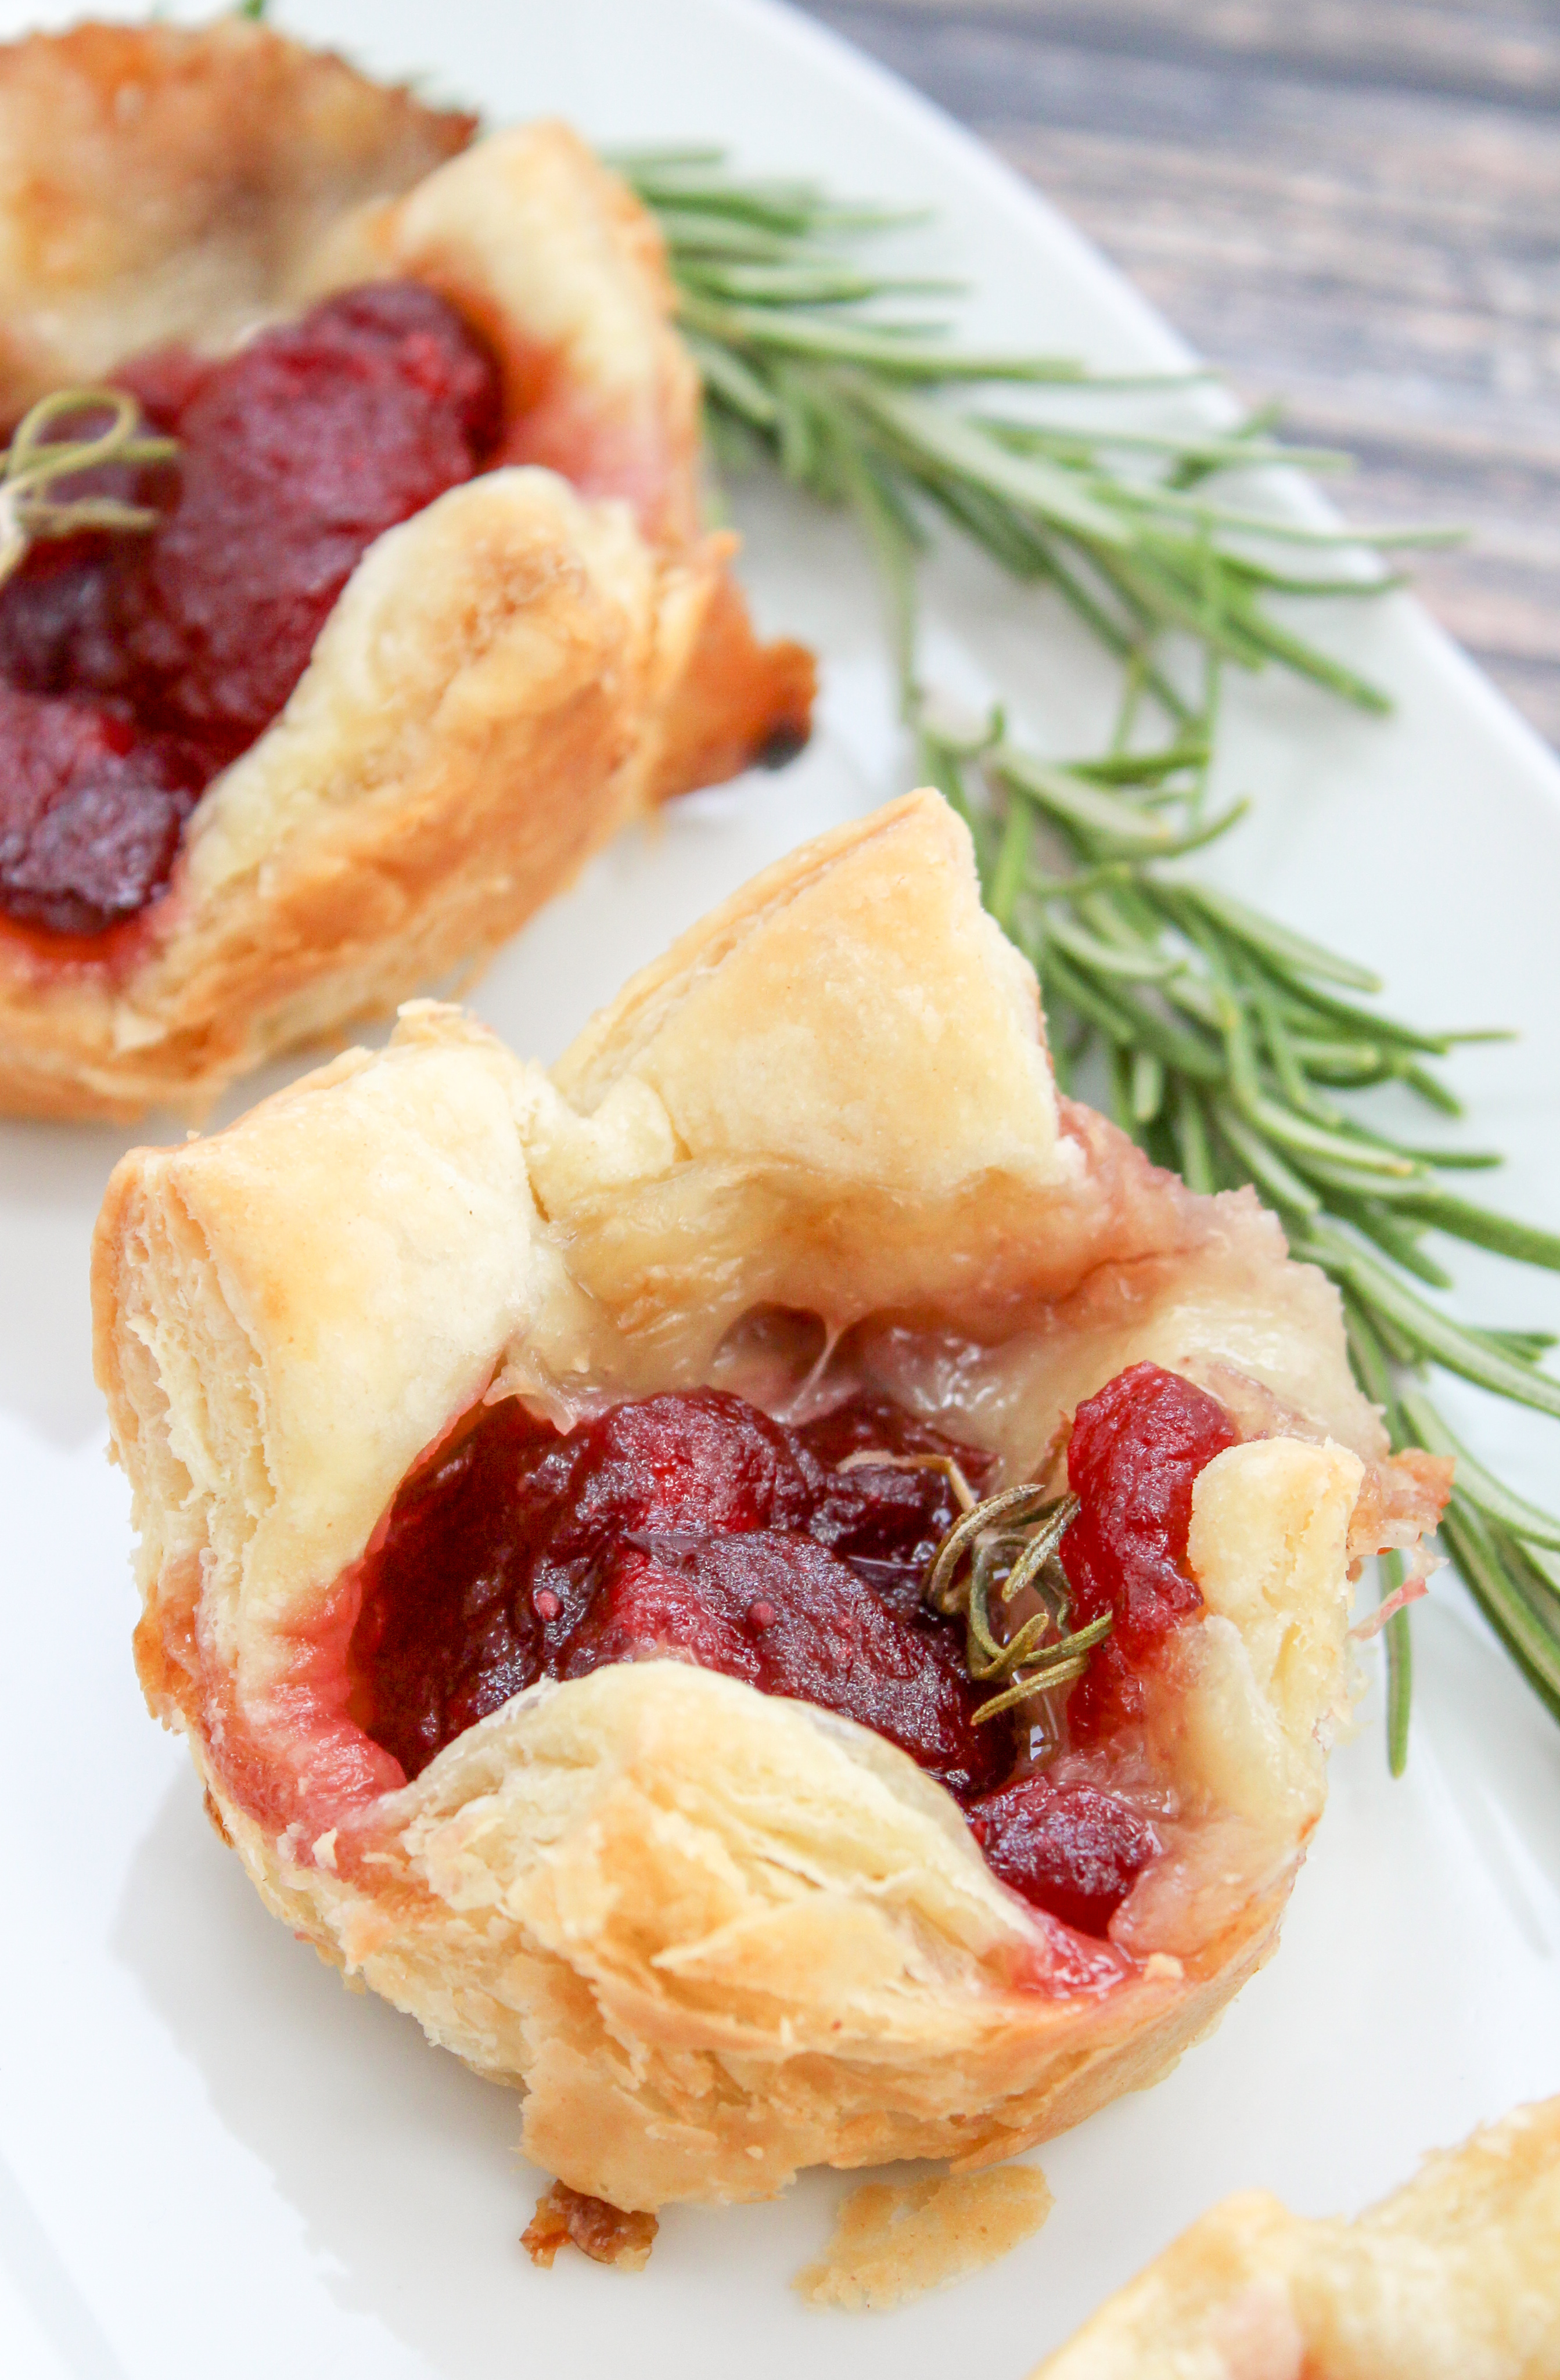 Cranberry and brie cheese in baked puffed pastry topped with rosemary